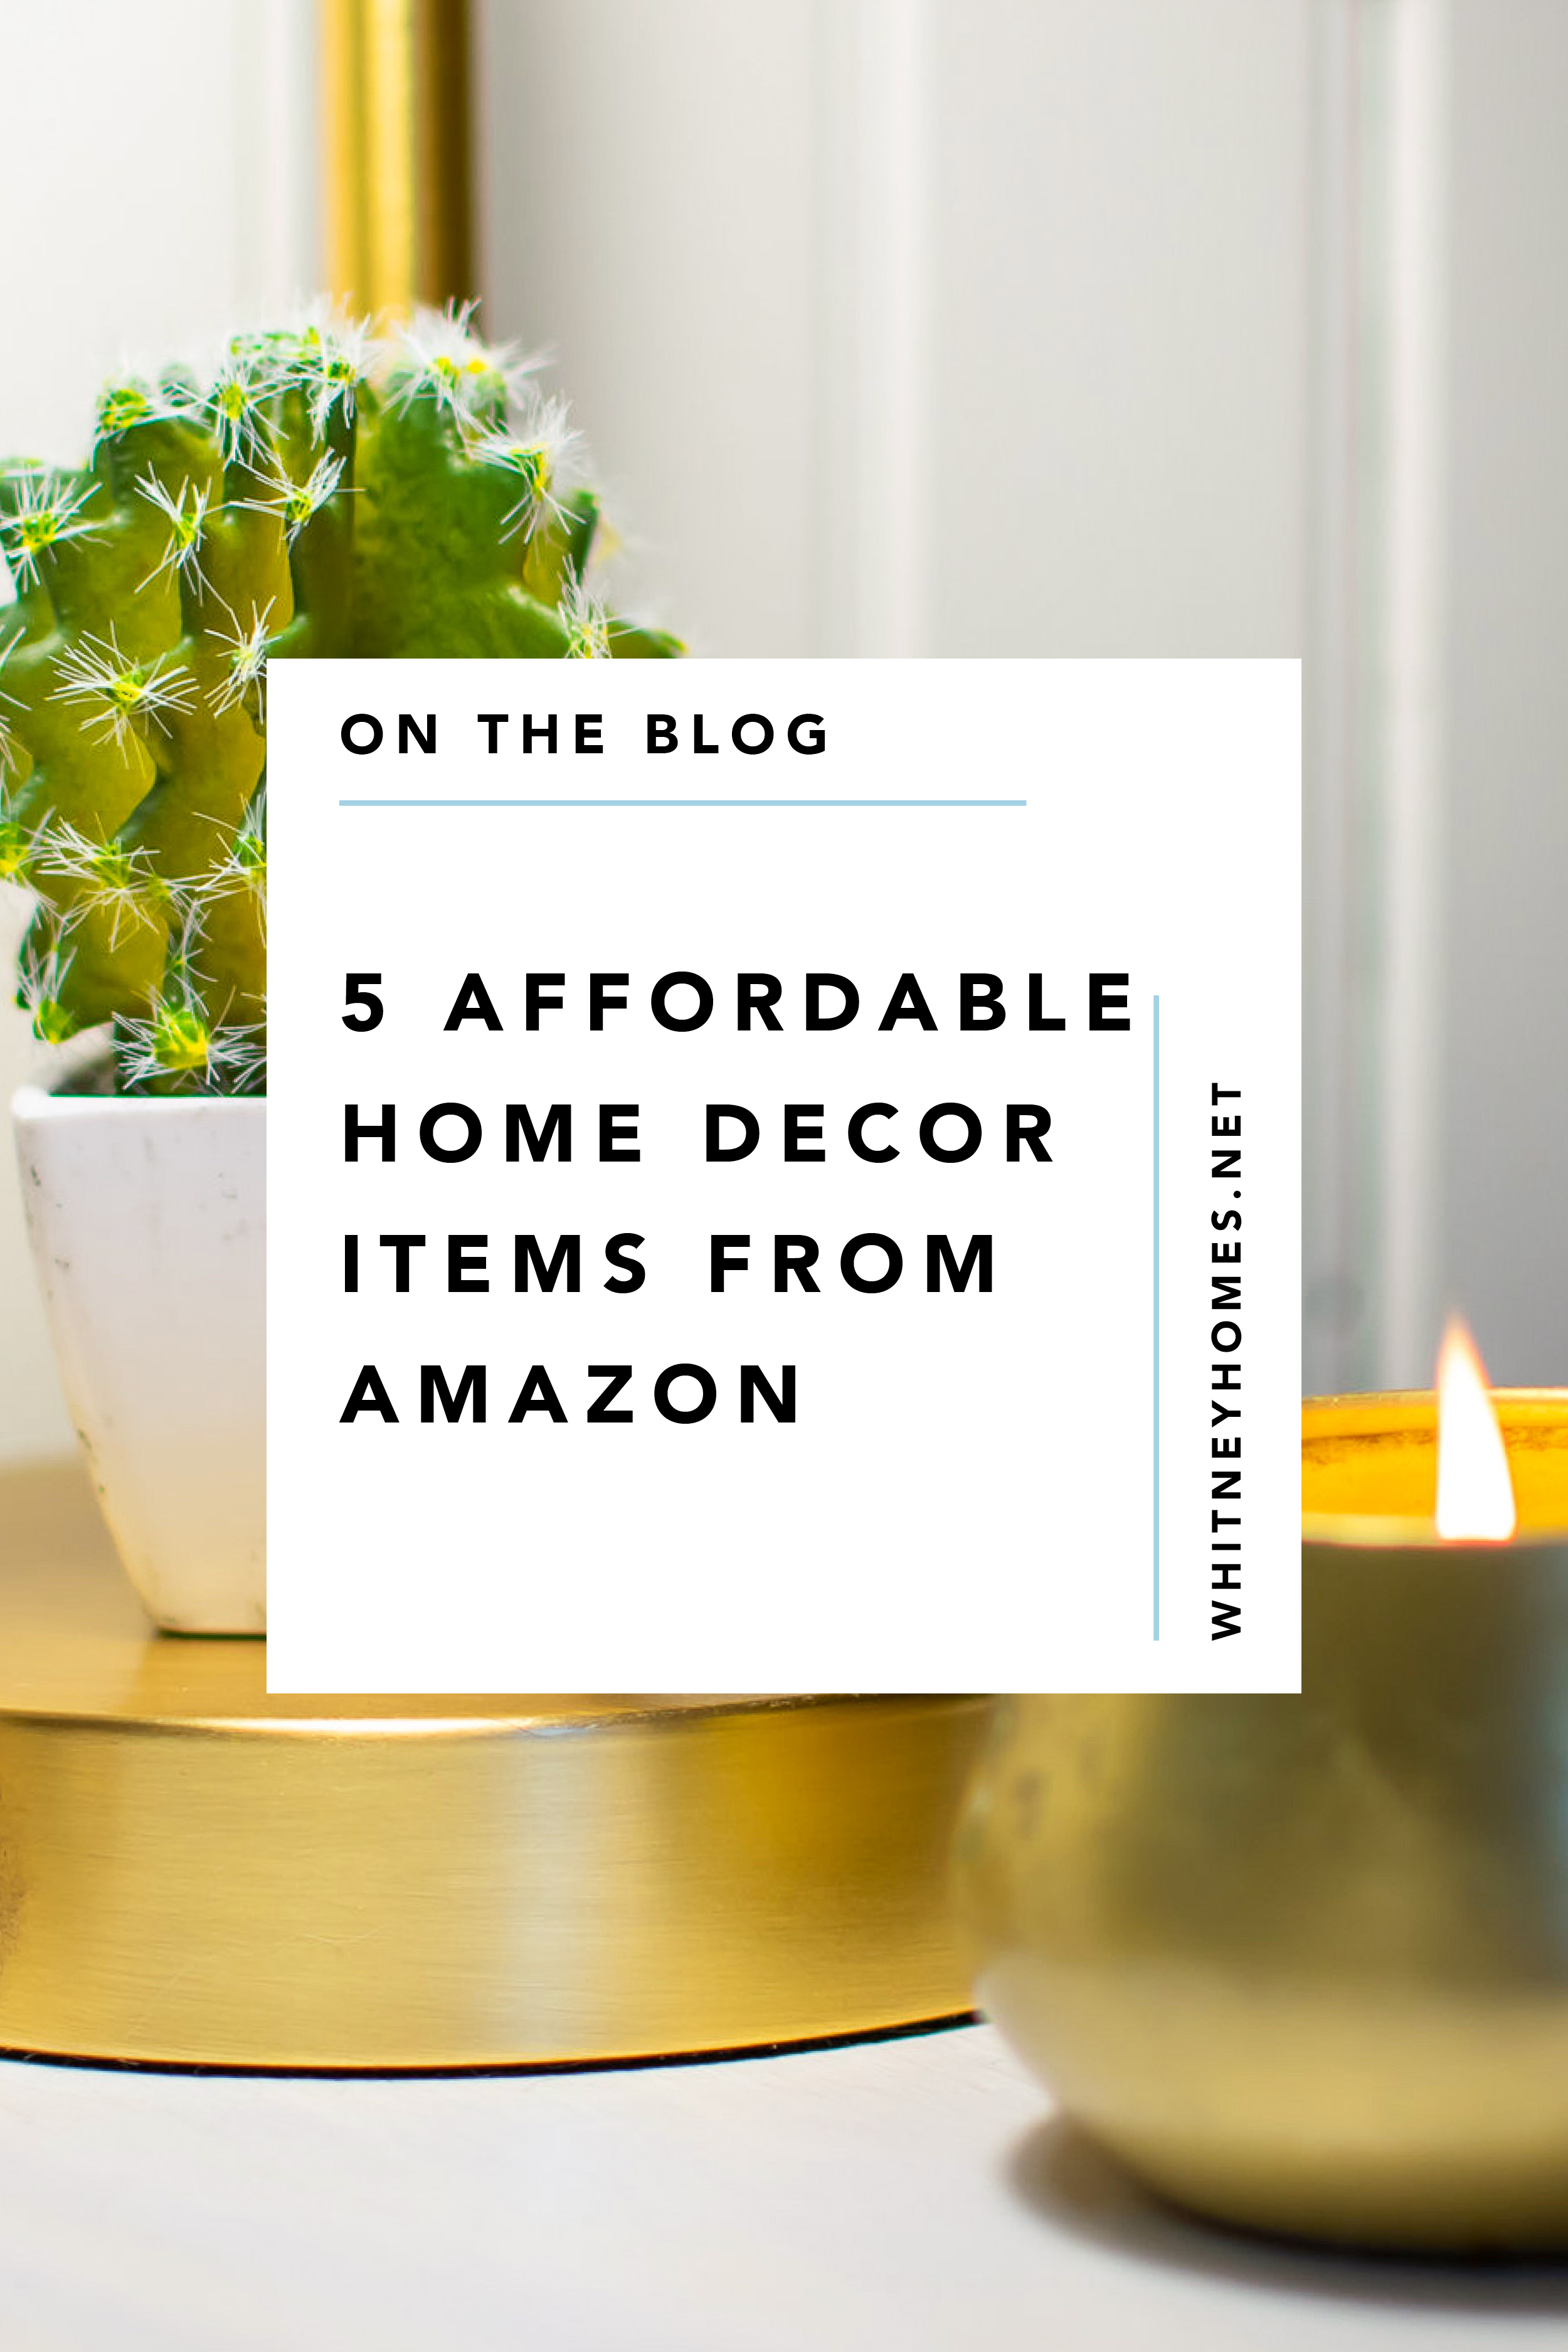 Amazon Home Decor_Social Media.jpg